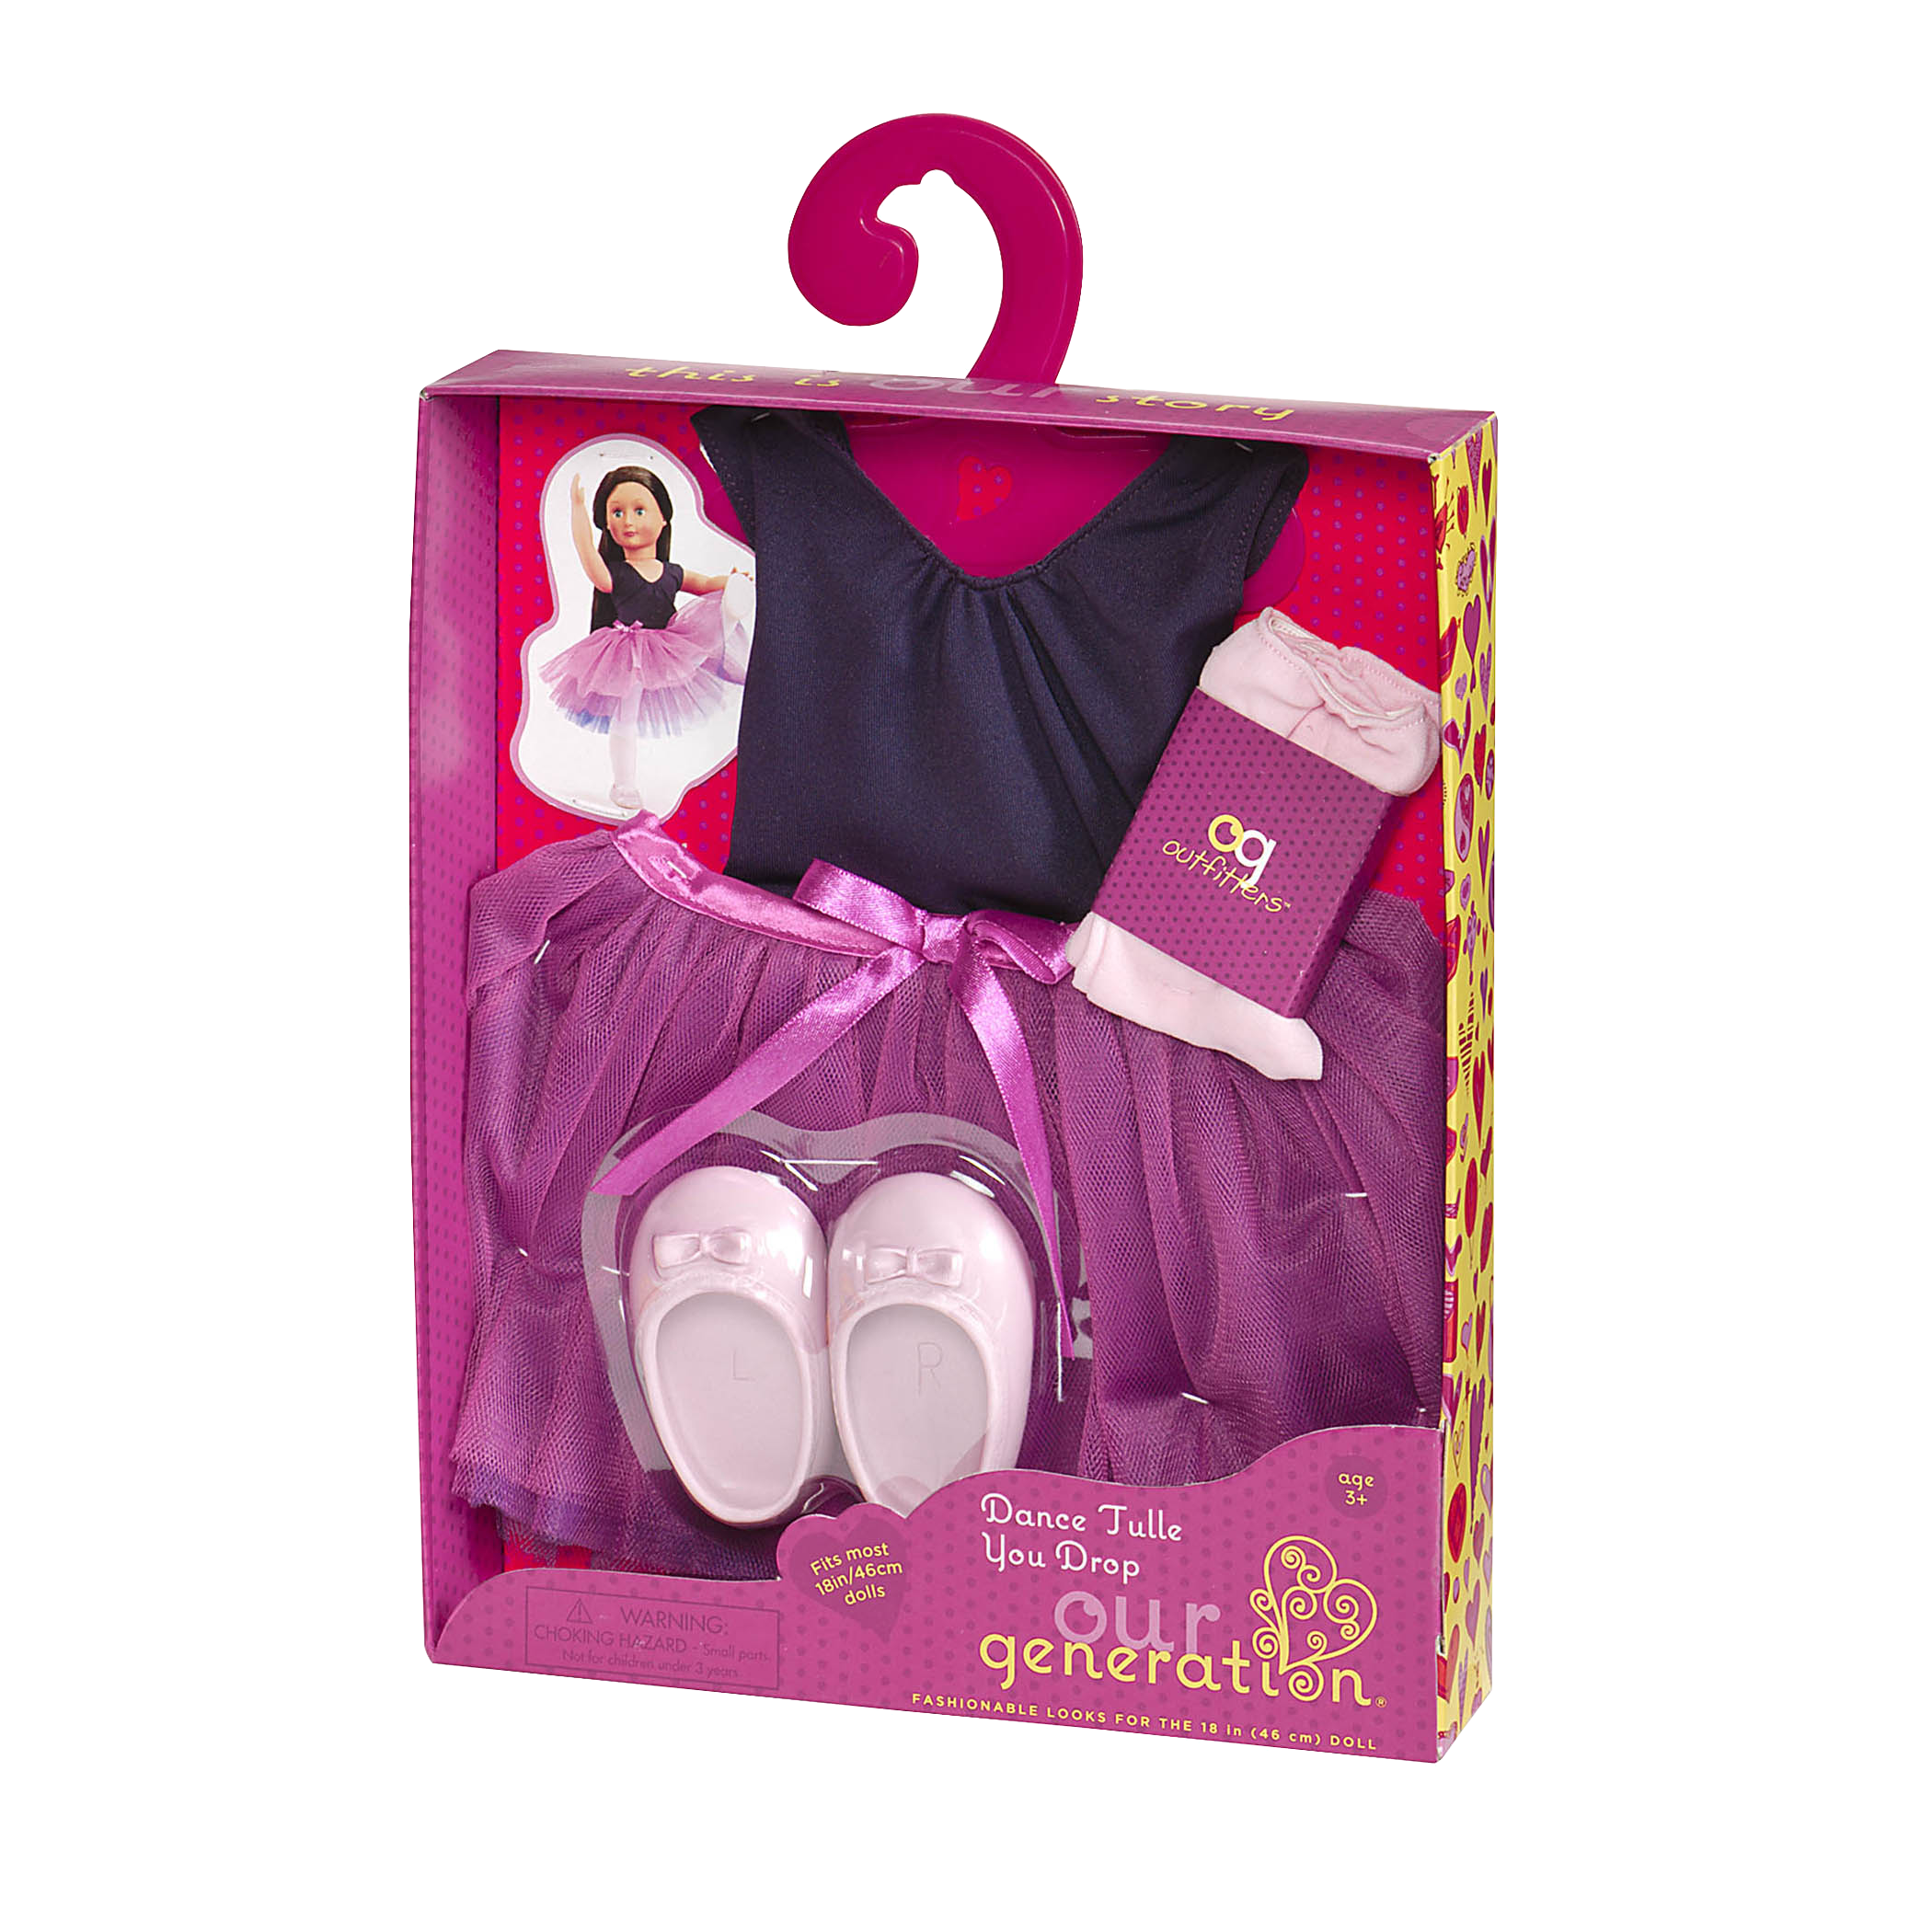 Dance Tulle You Drop ballet outfit package